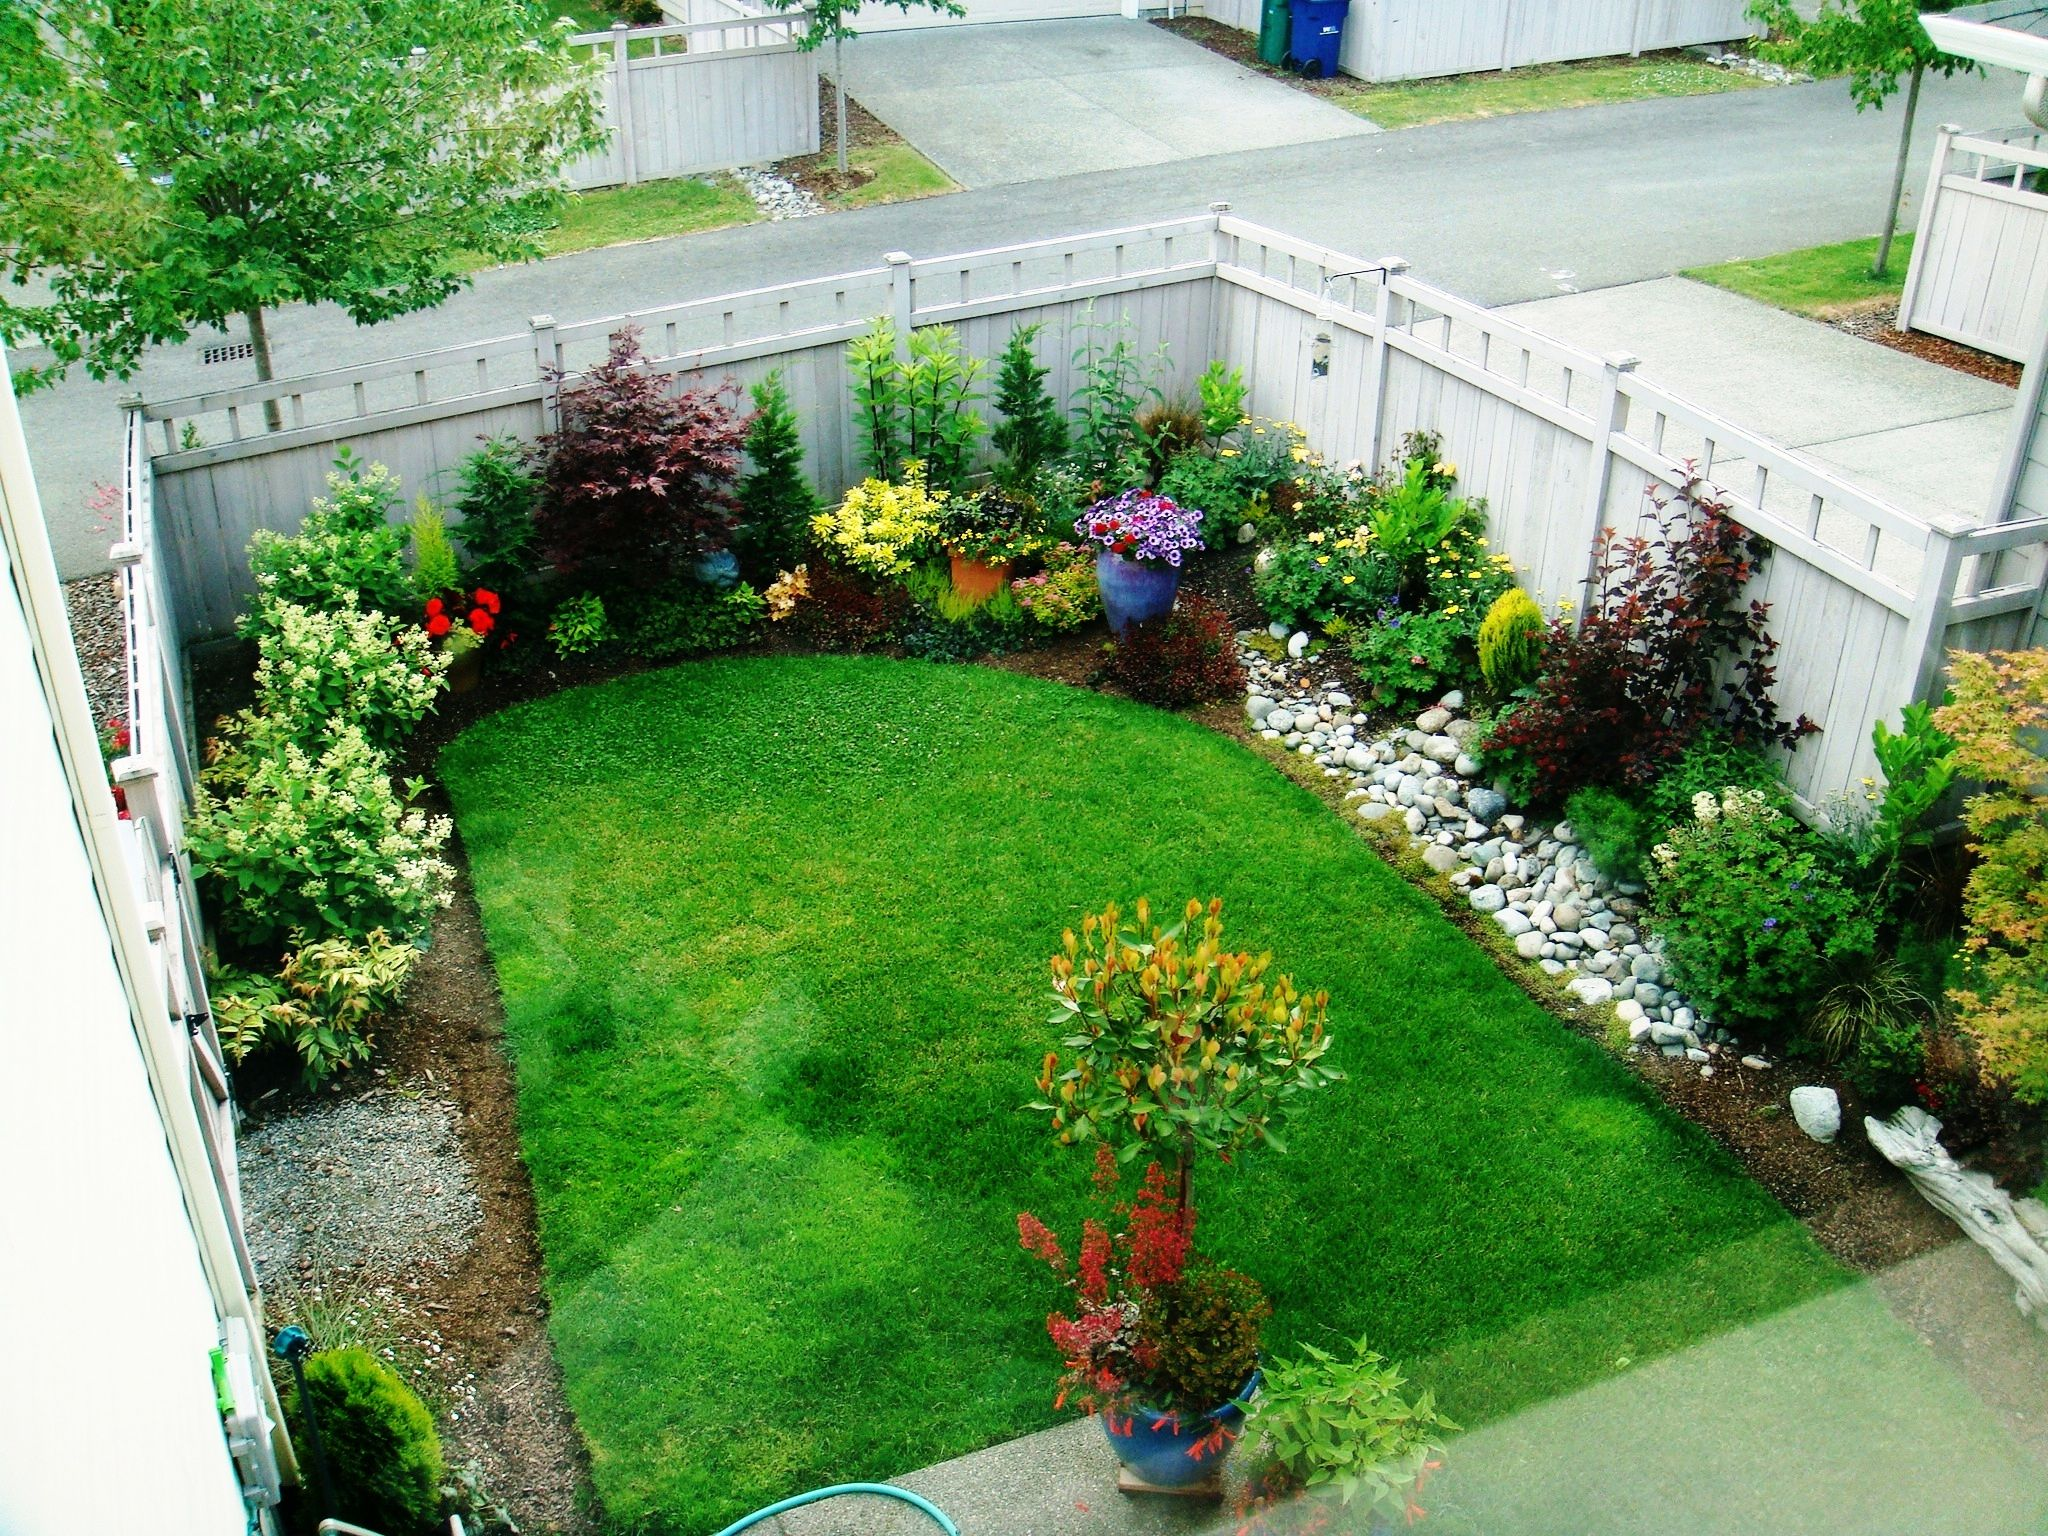 Small backyard garden. This person didn't care for the grass and replaced it